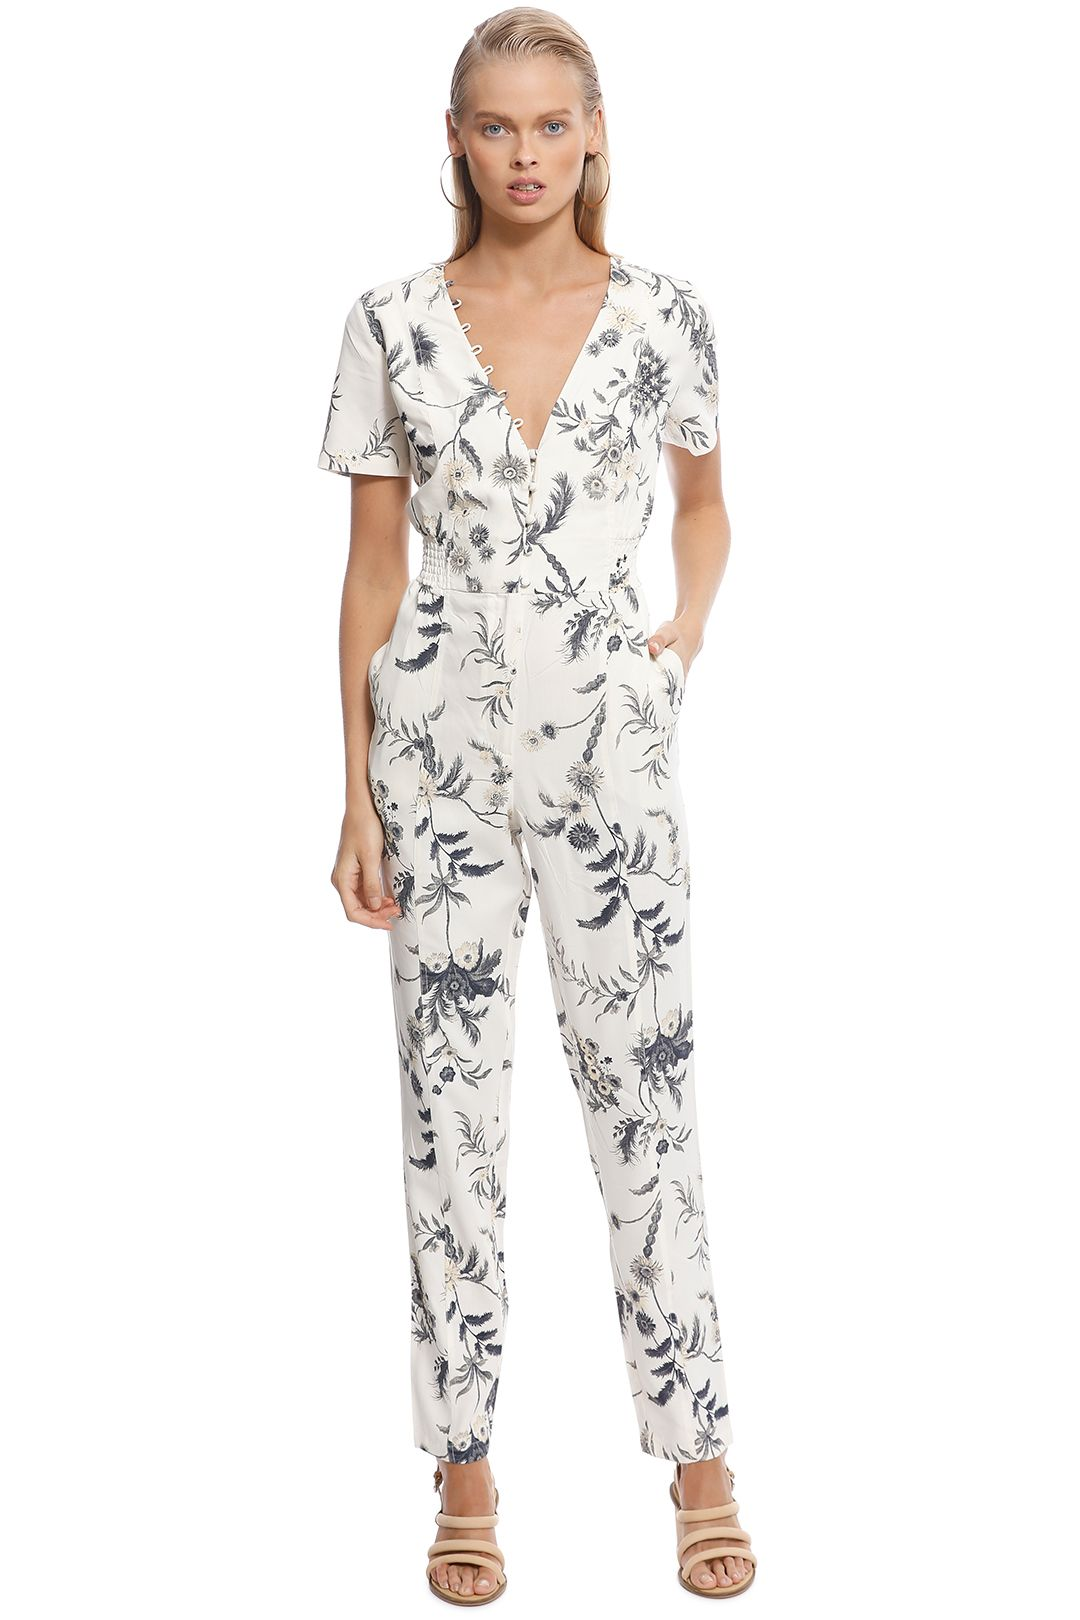 SIR The Label - Florentine Panelled Jumpsuit - Ivory - Front